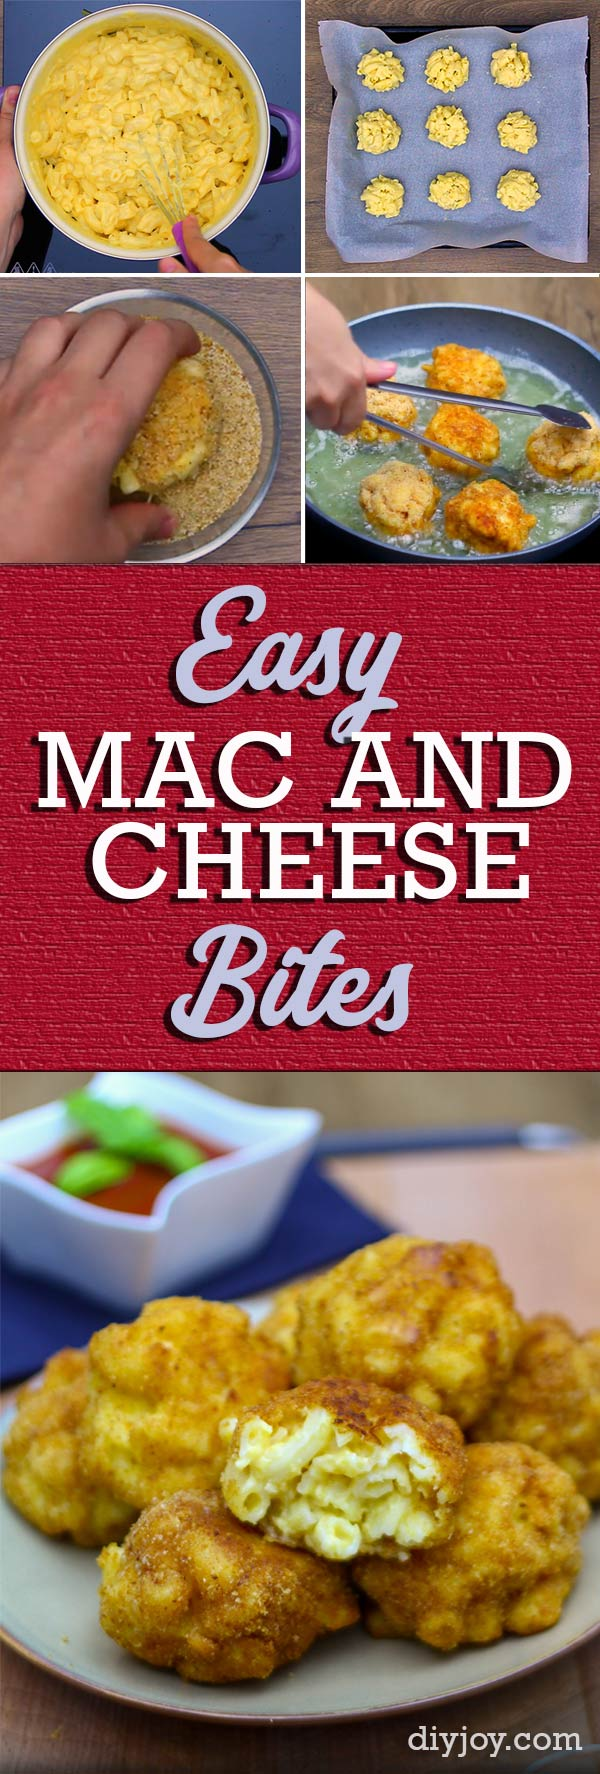 Macaroni and Cheese Recipes - Easy Mac and Cheese Bites - Best Mac and Cheese Recipe - Baked, Crockpot, Stovetop and Easy, Quick Variations - Homemade, Creamy Sauce - Pioneer Woman Favorites - Velveets Cheddar and 3 Cheese Bacon, Breadcrumbs